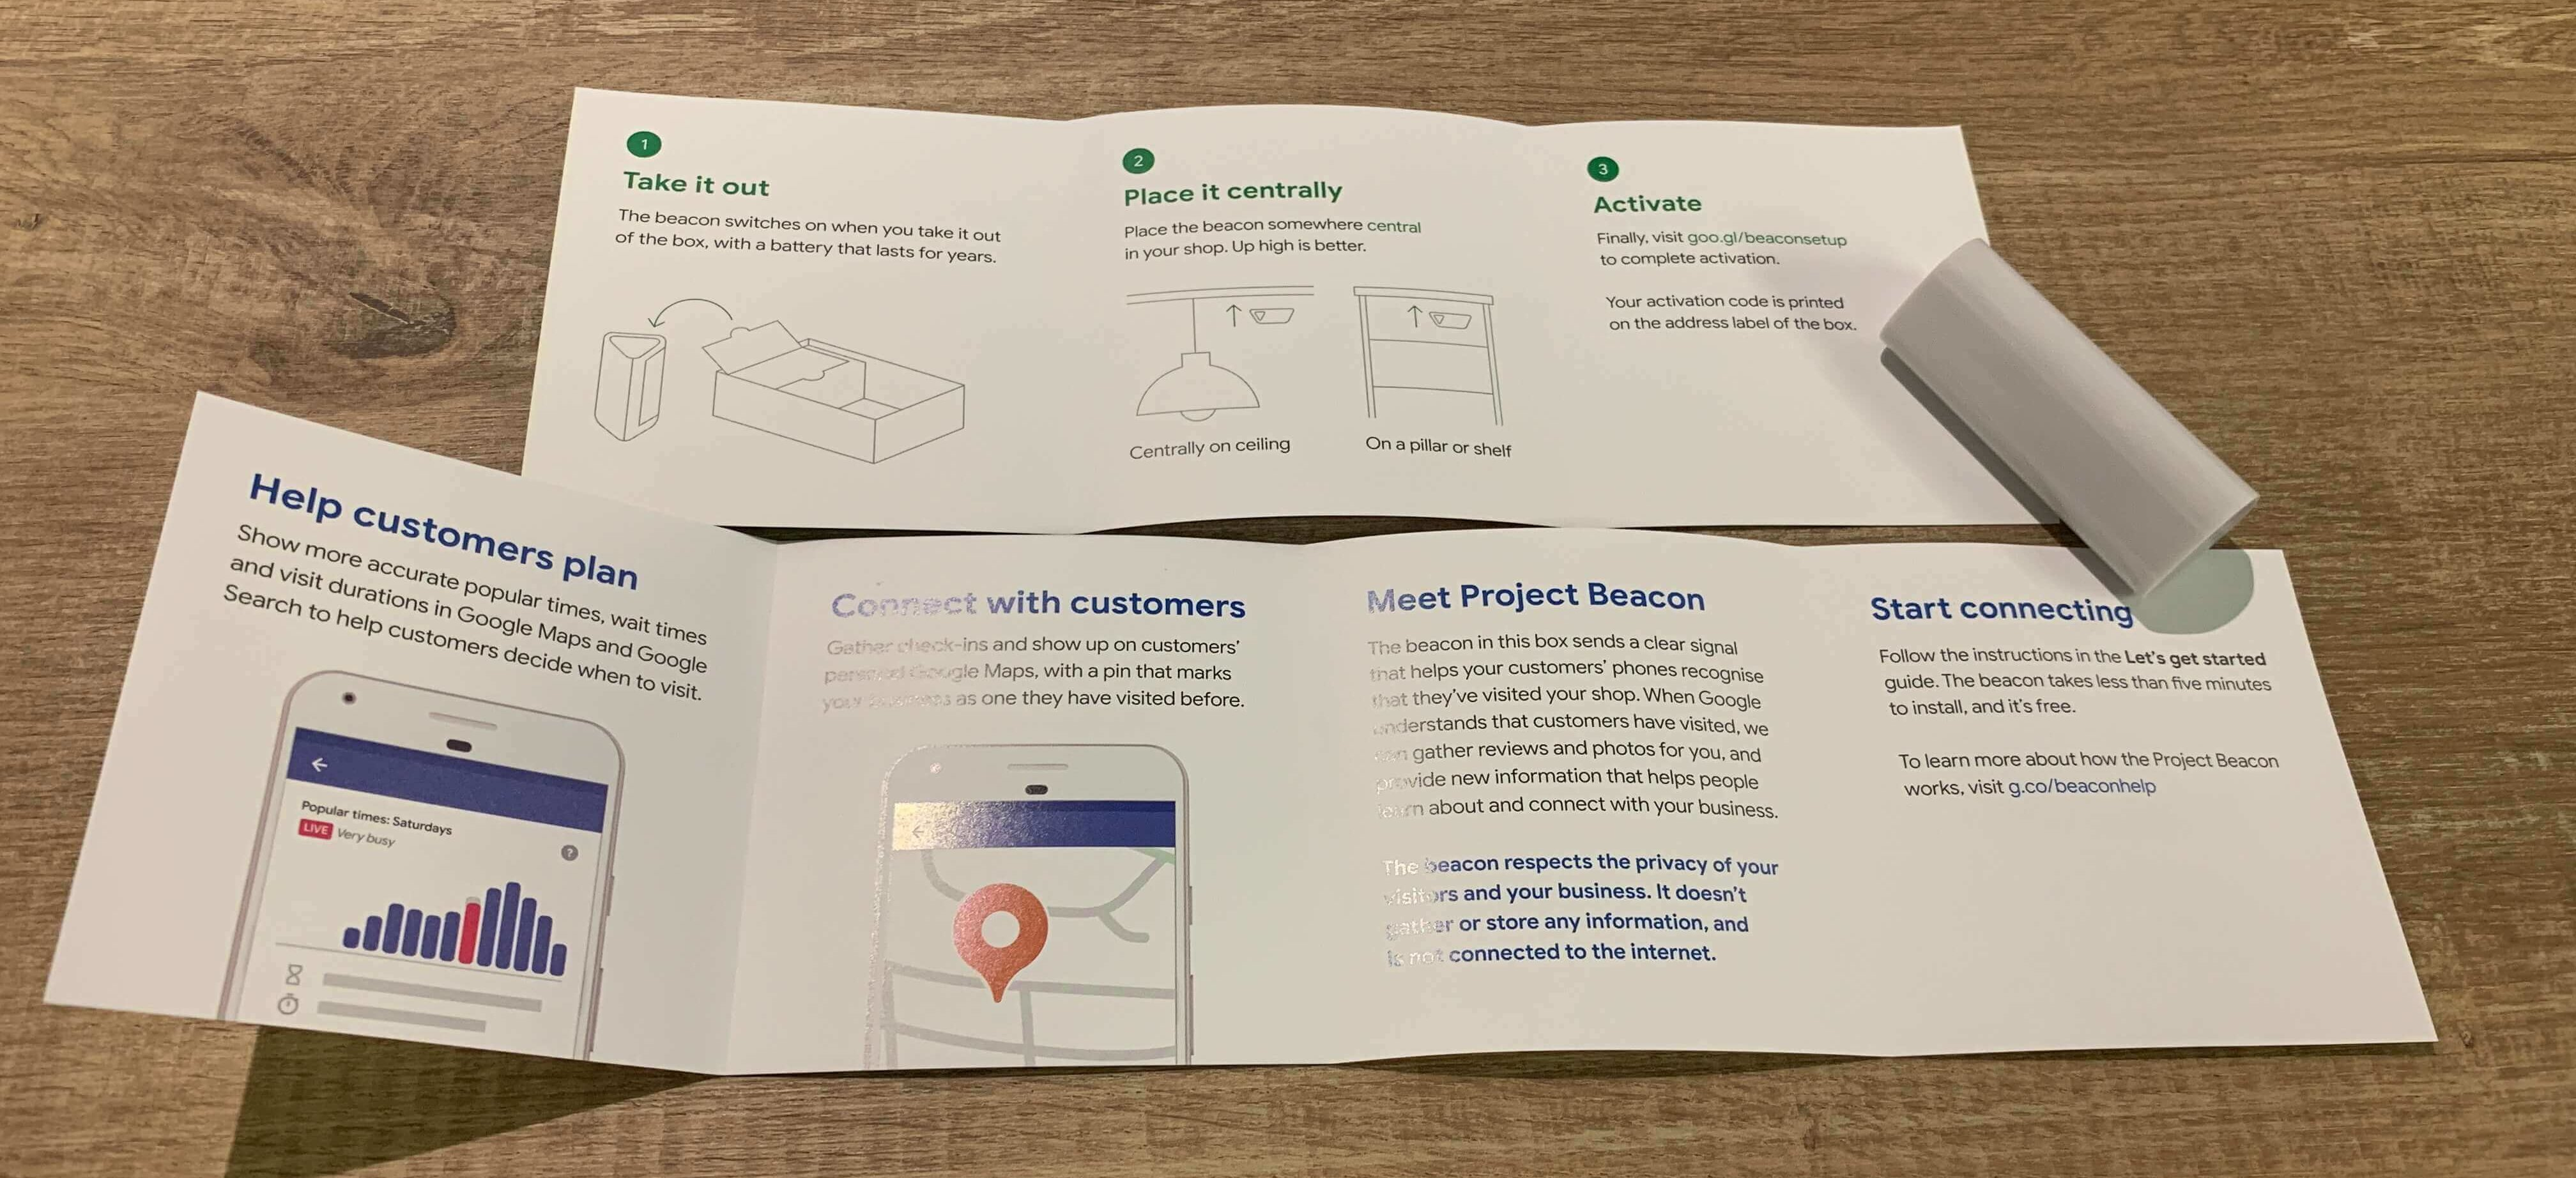 Google Project Beacon Unboxing Instructions